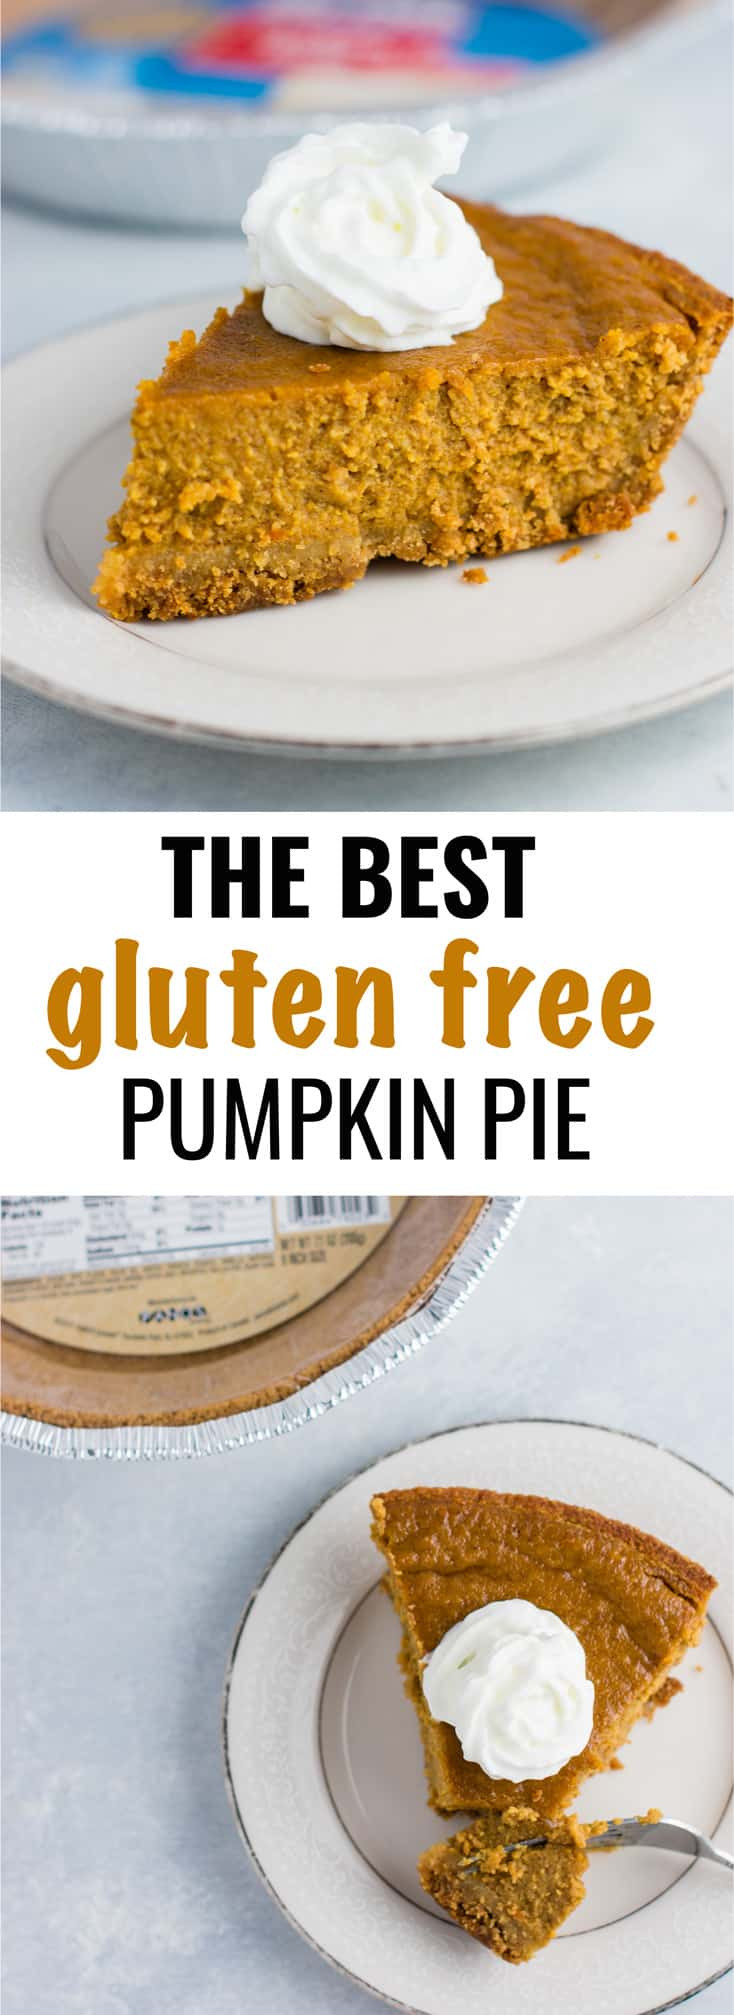 Gluten Free Pumpkin Pie  Gluten Free Pumpkin Pie Recipe with maple syrup